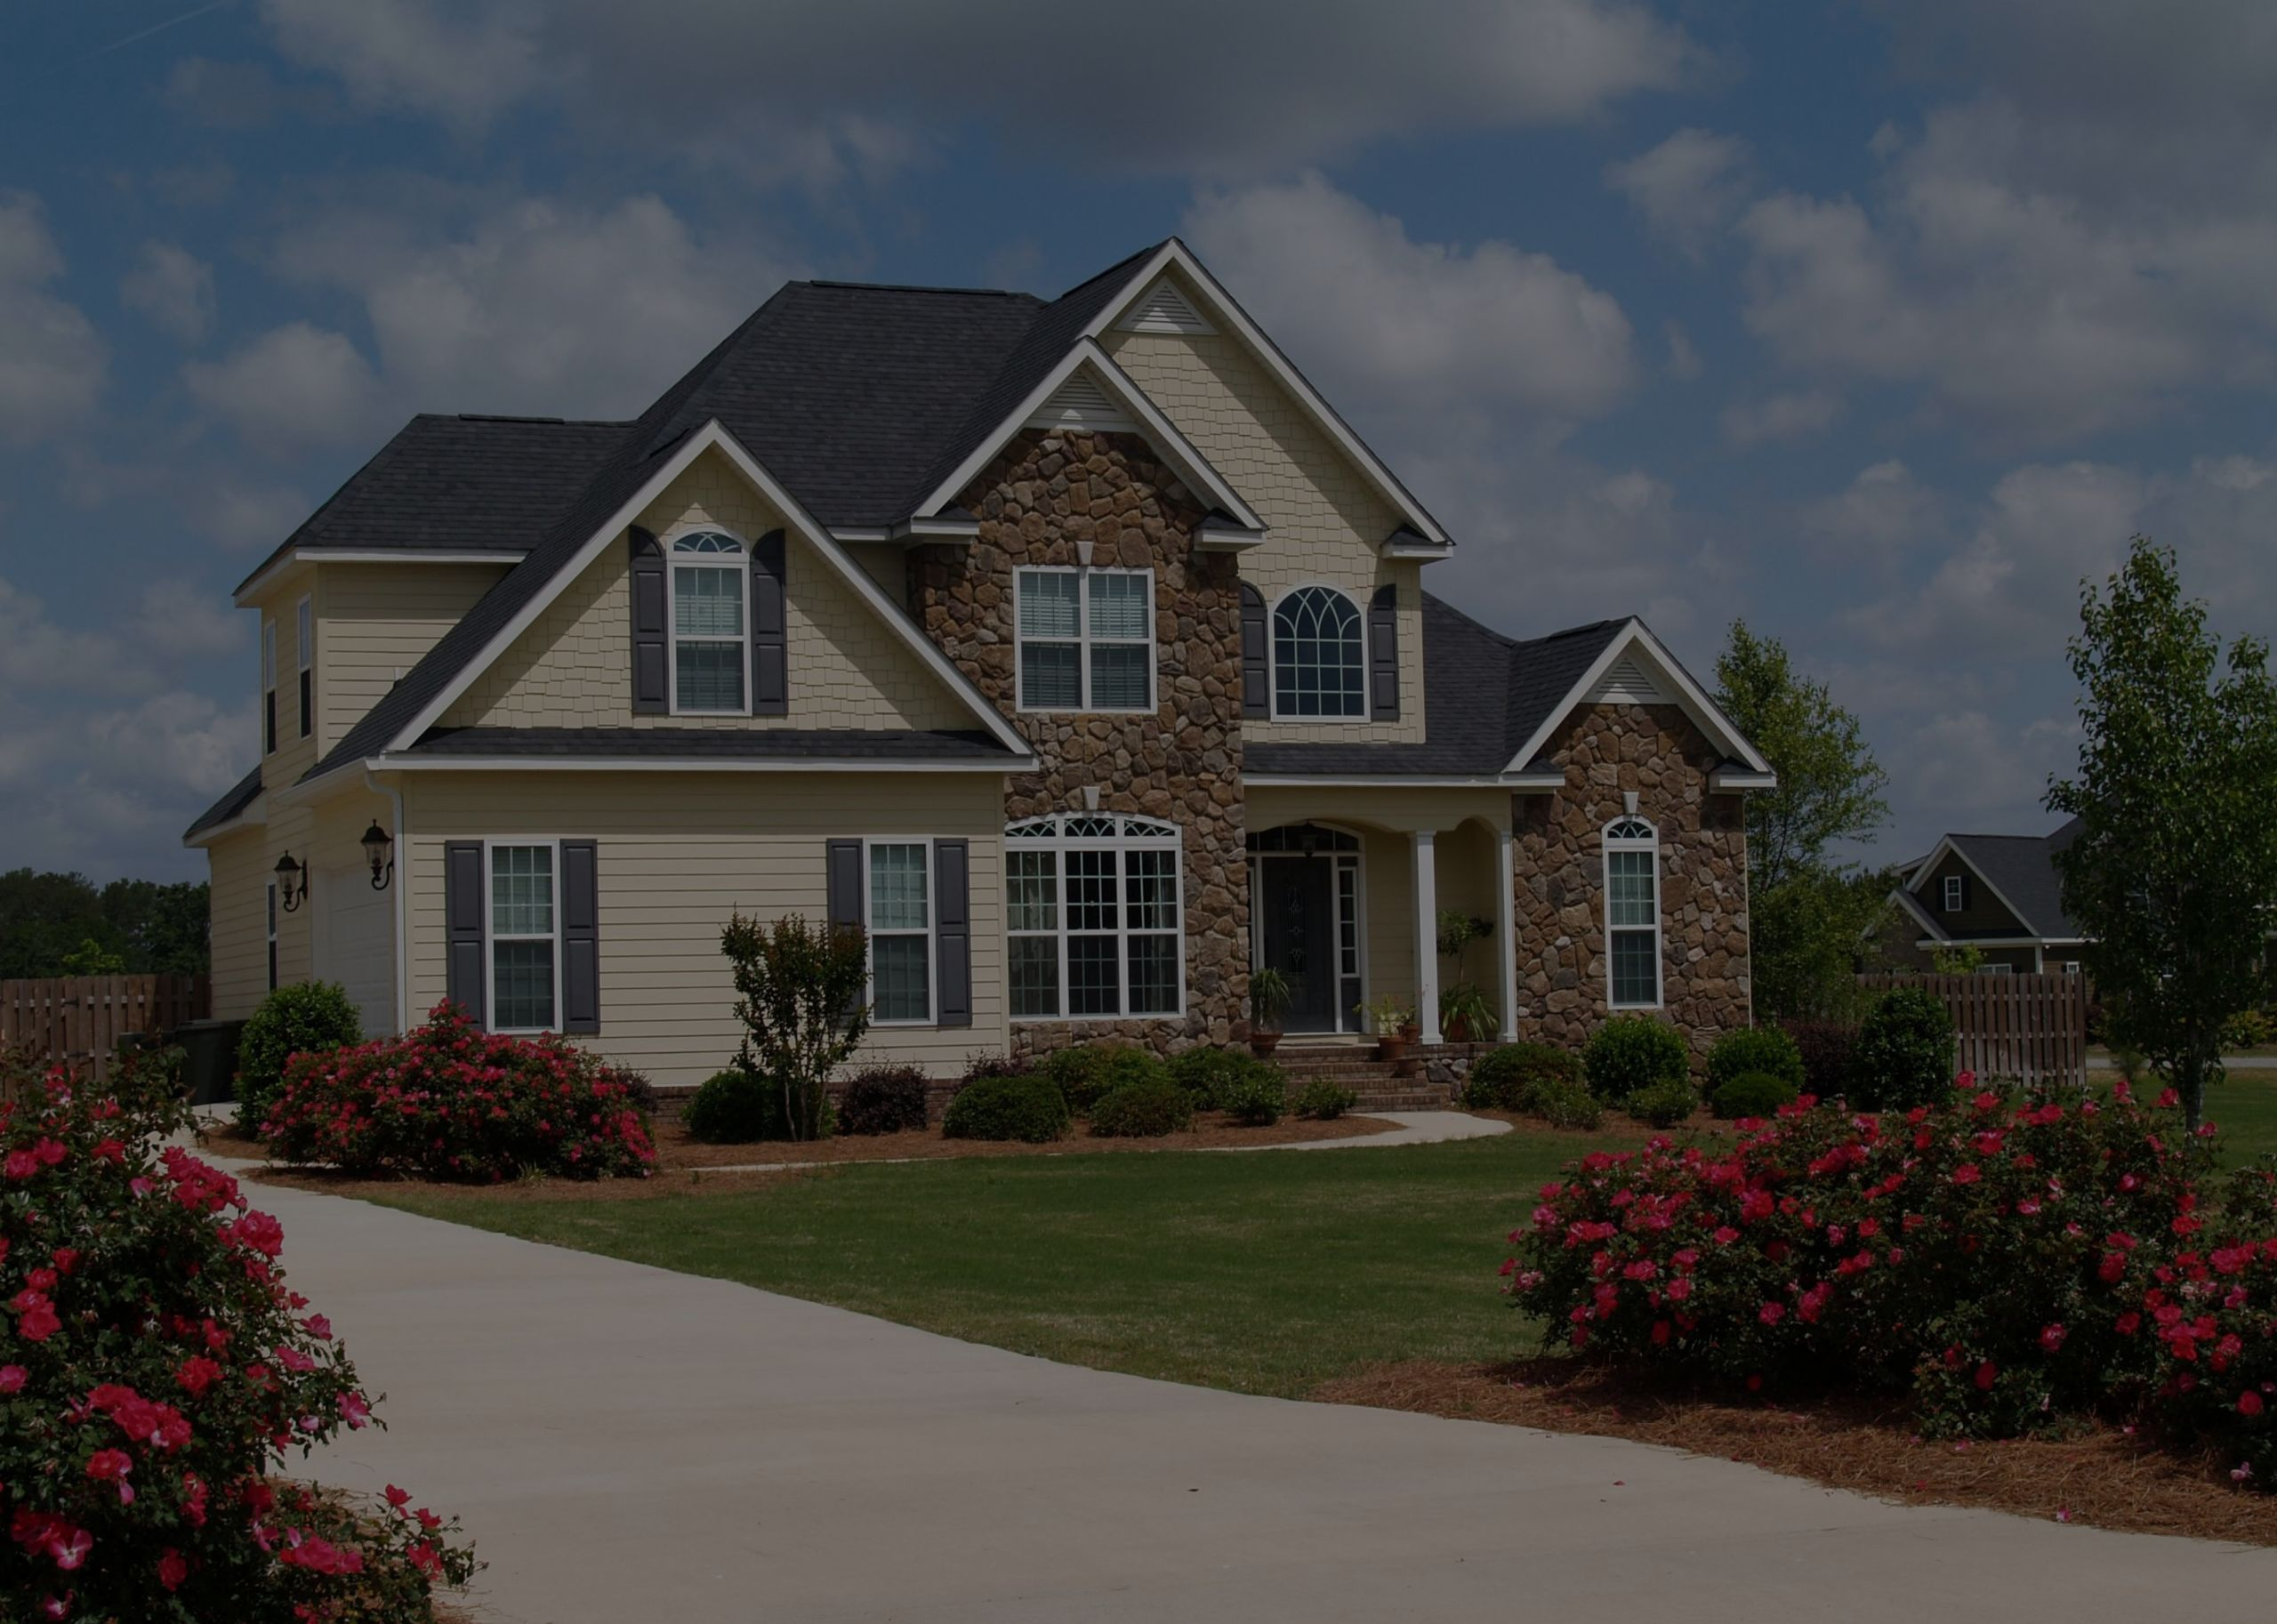 Providing a superior level of professional real estate services to buyers and sellers in Greater Stark County